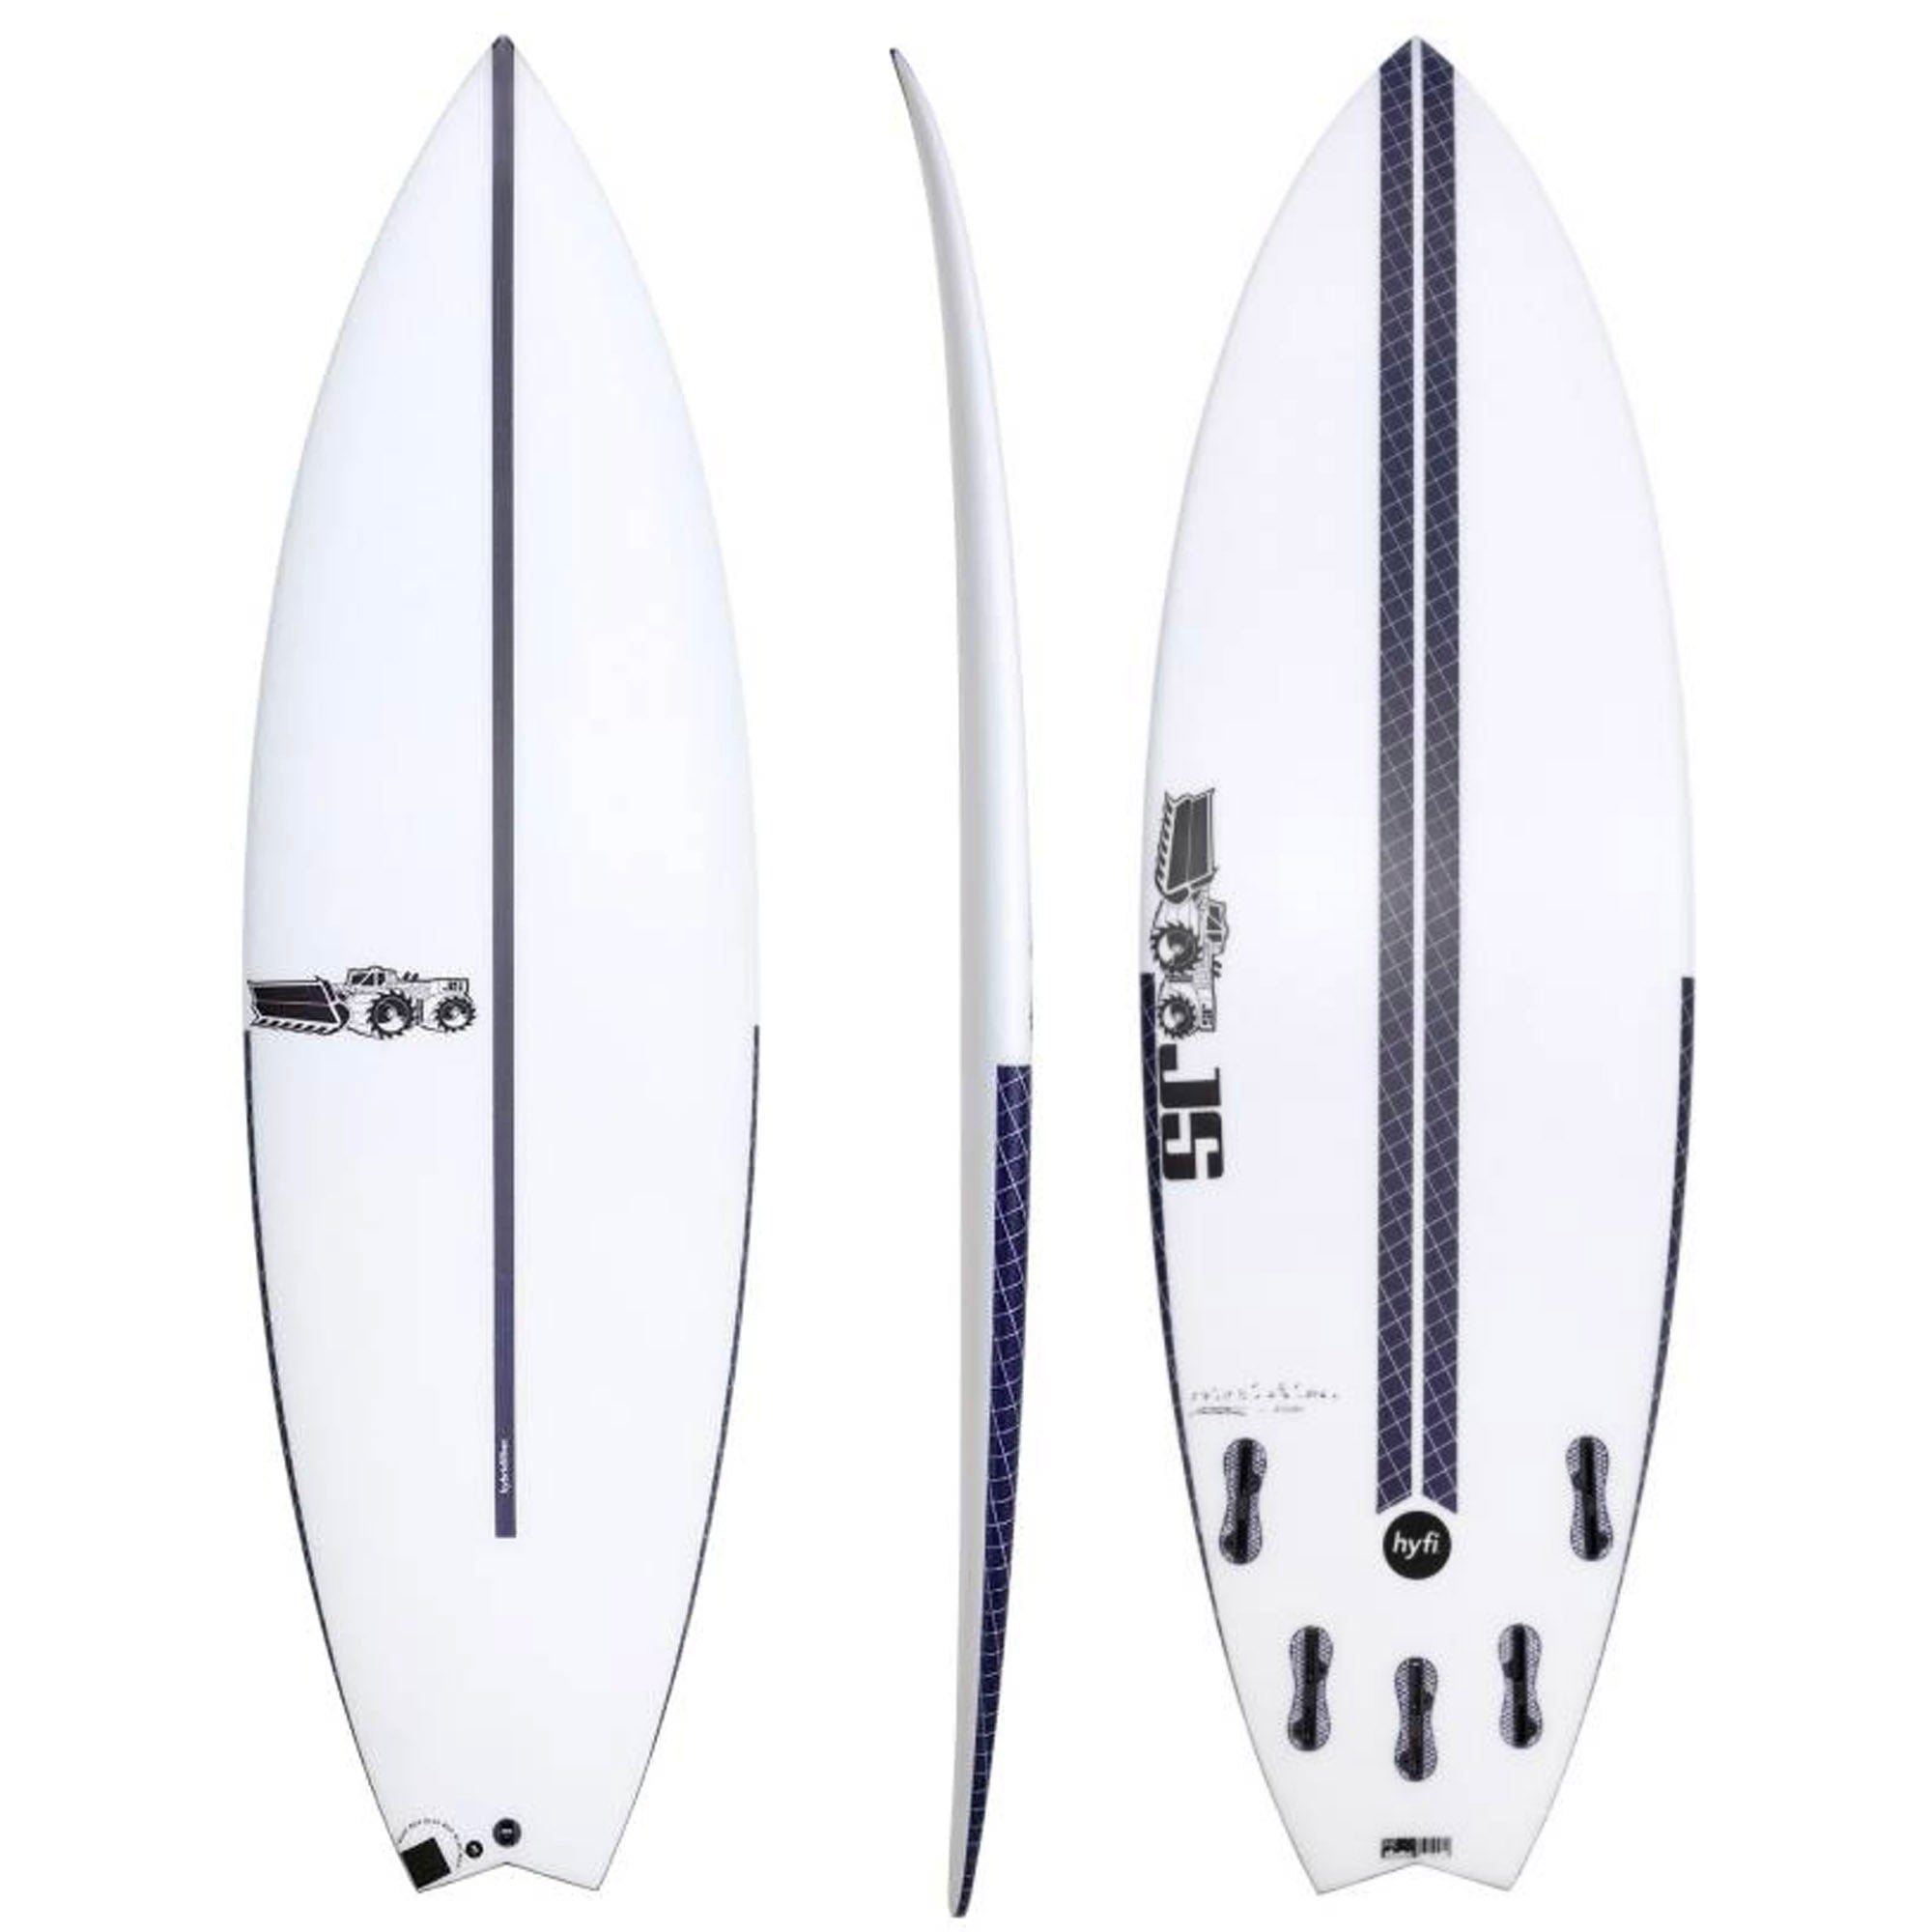 JS Blak Box 3 Swallow HYFI Surfboard - FCS II